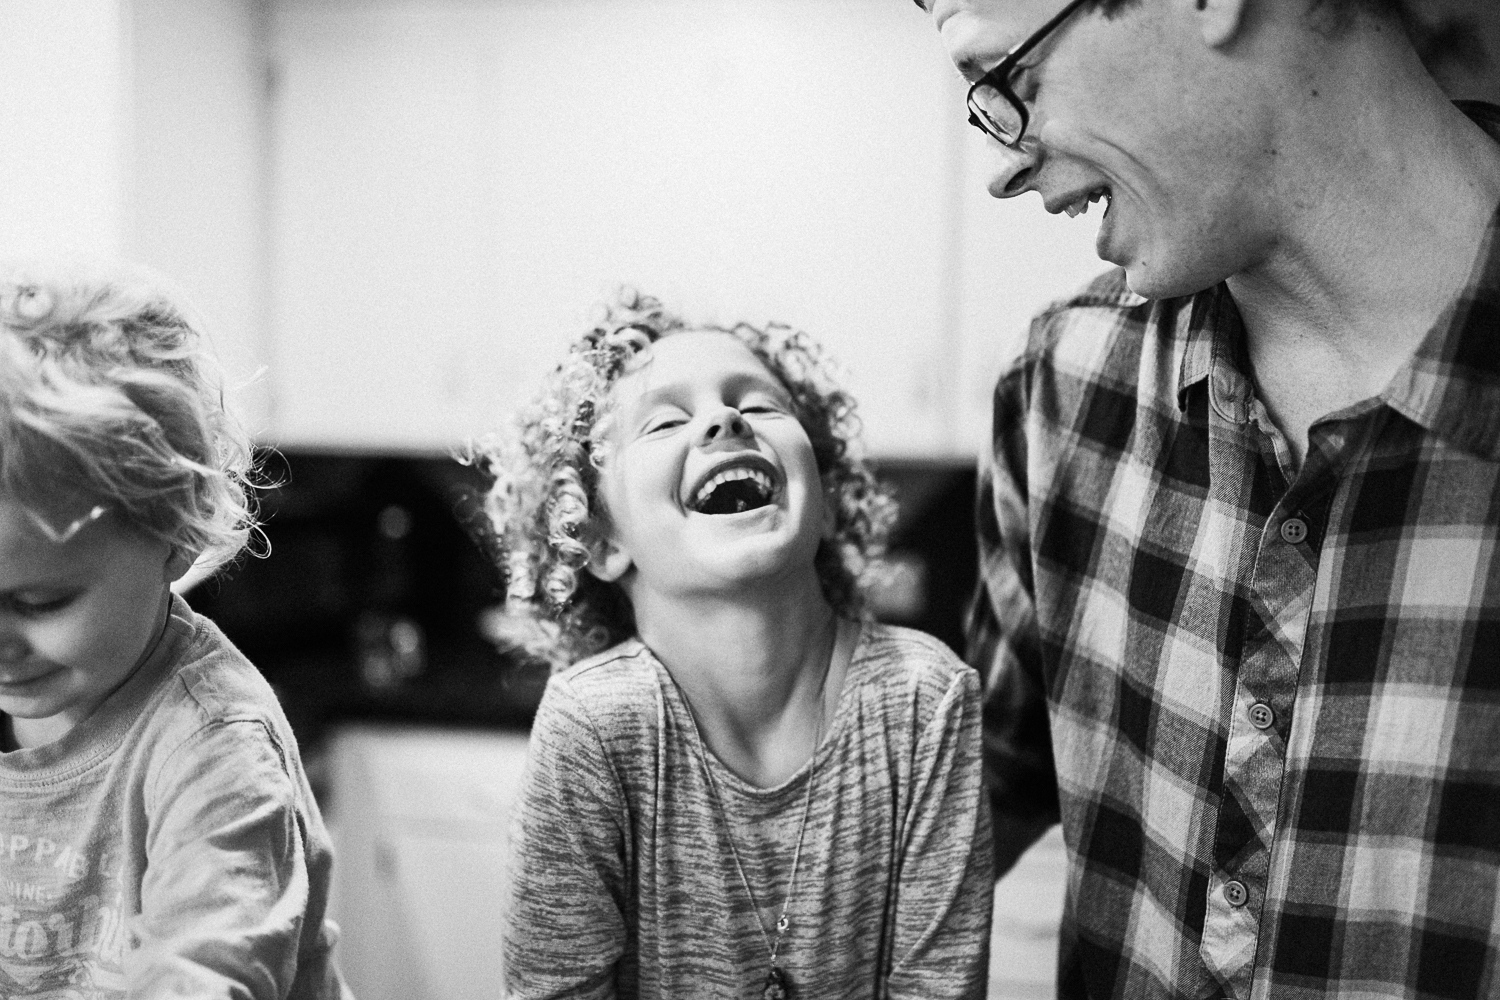 candid-and-raw-photo-of-little-girl-laughing-at-in-home-family-photography-session-millcreek-utah